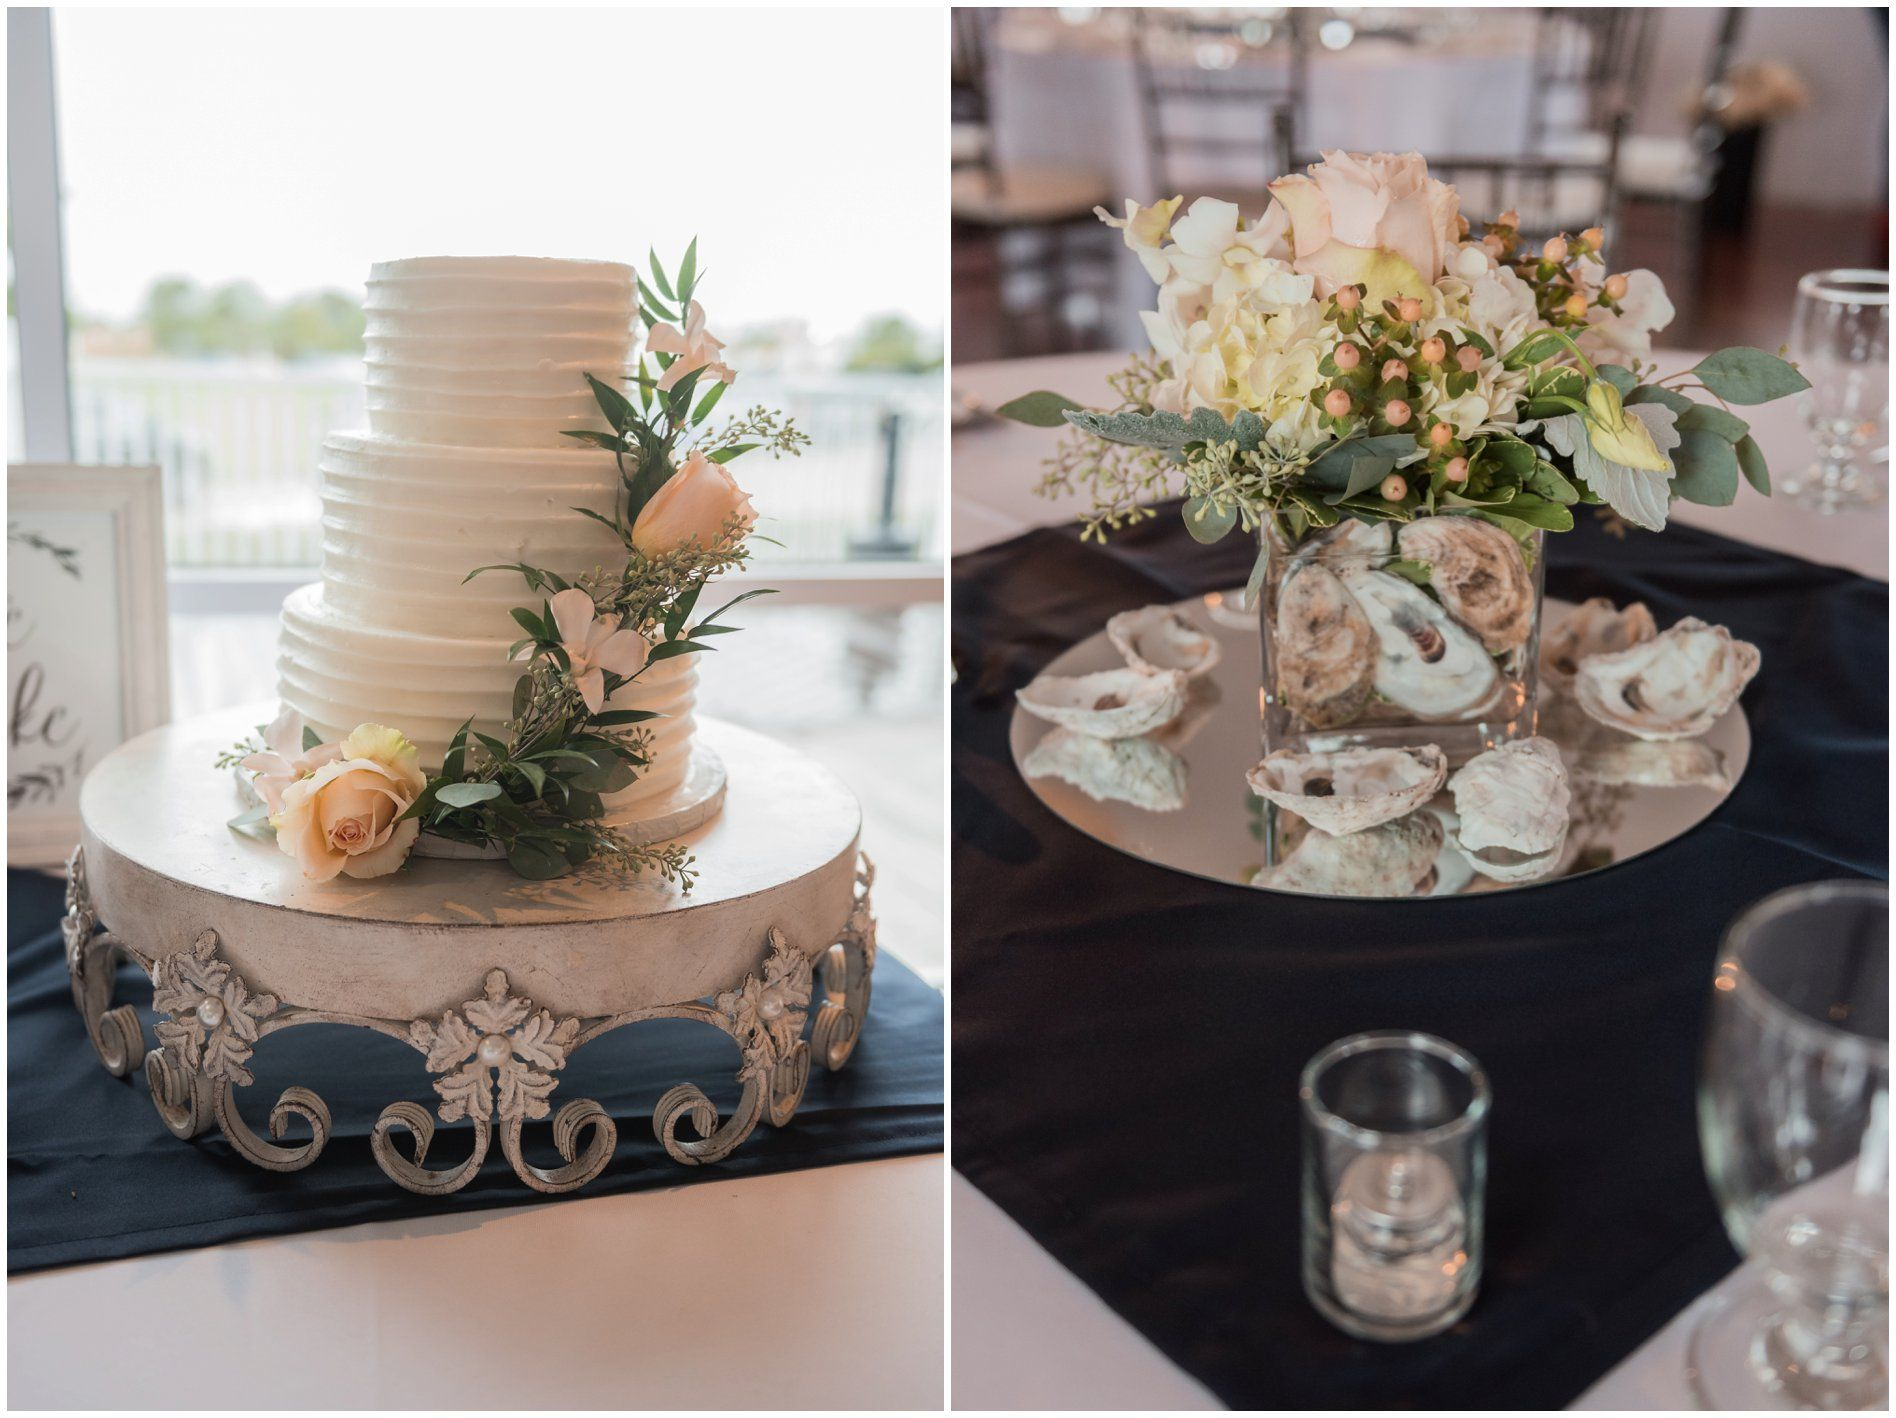 The Wedding Detail for a Oyster Farm Wedding in Eastern Shore Virginia Included The Oyster Shells In the table setting. Gorgeous Table settings and  Wedding Cake - #ElizabethHensonPhotos #oysterfarm #virginiaweddingphotographer